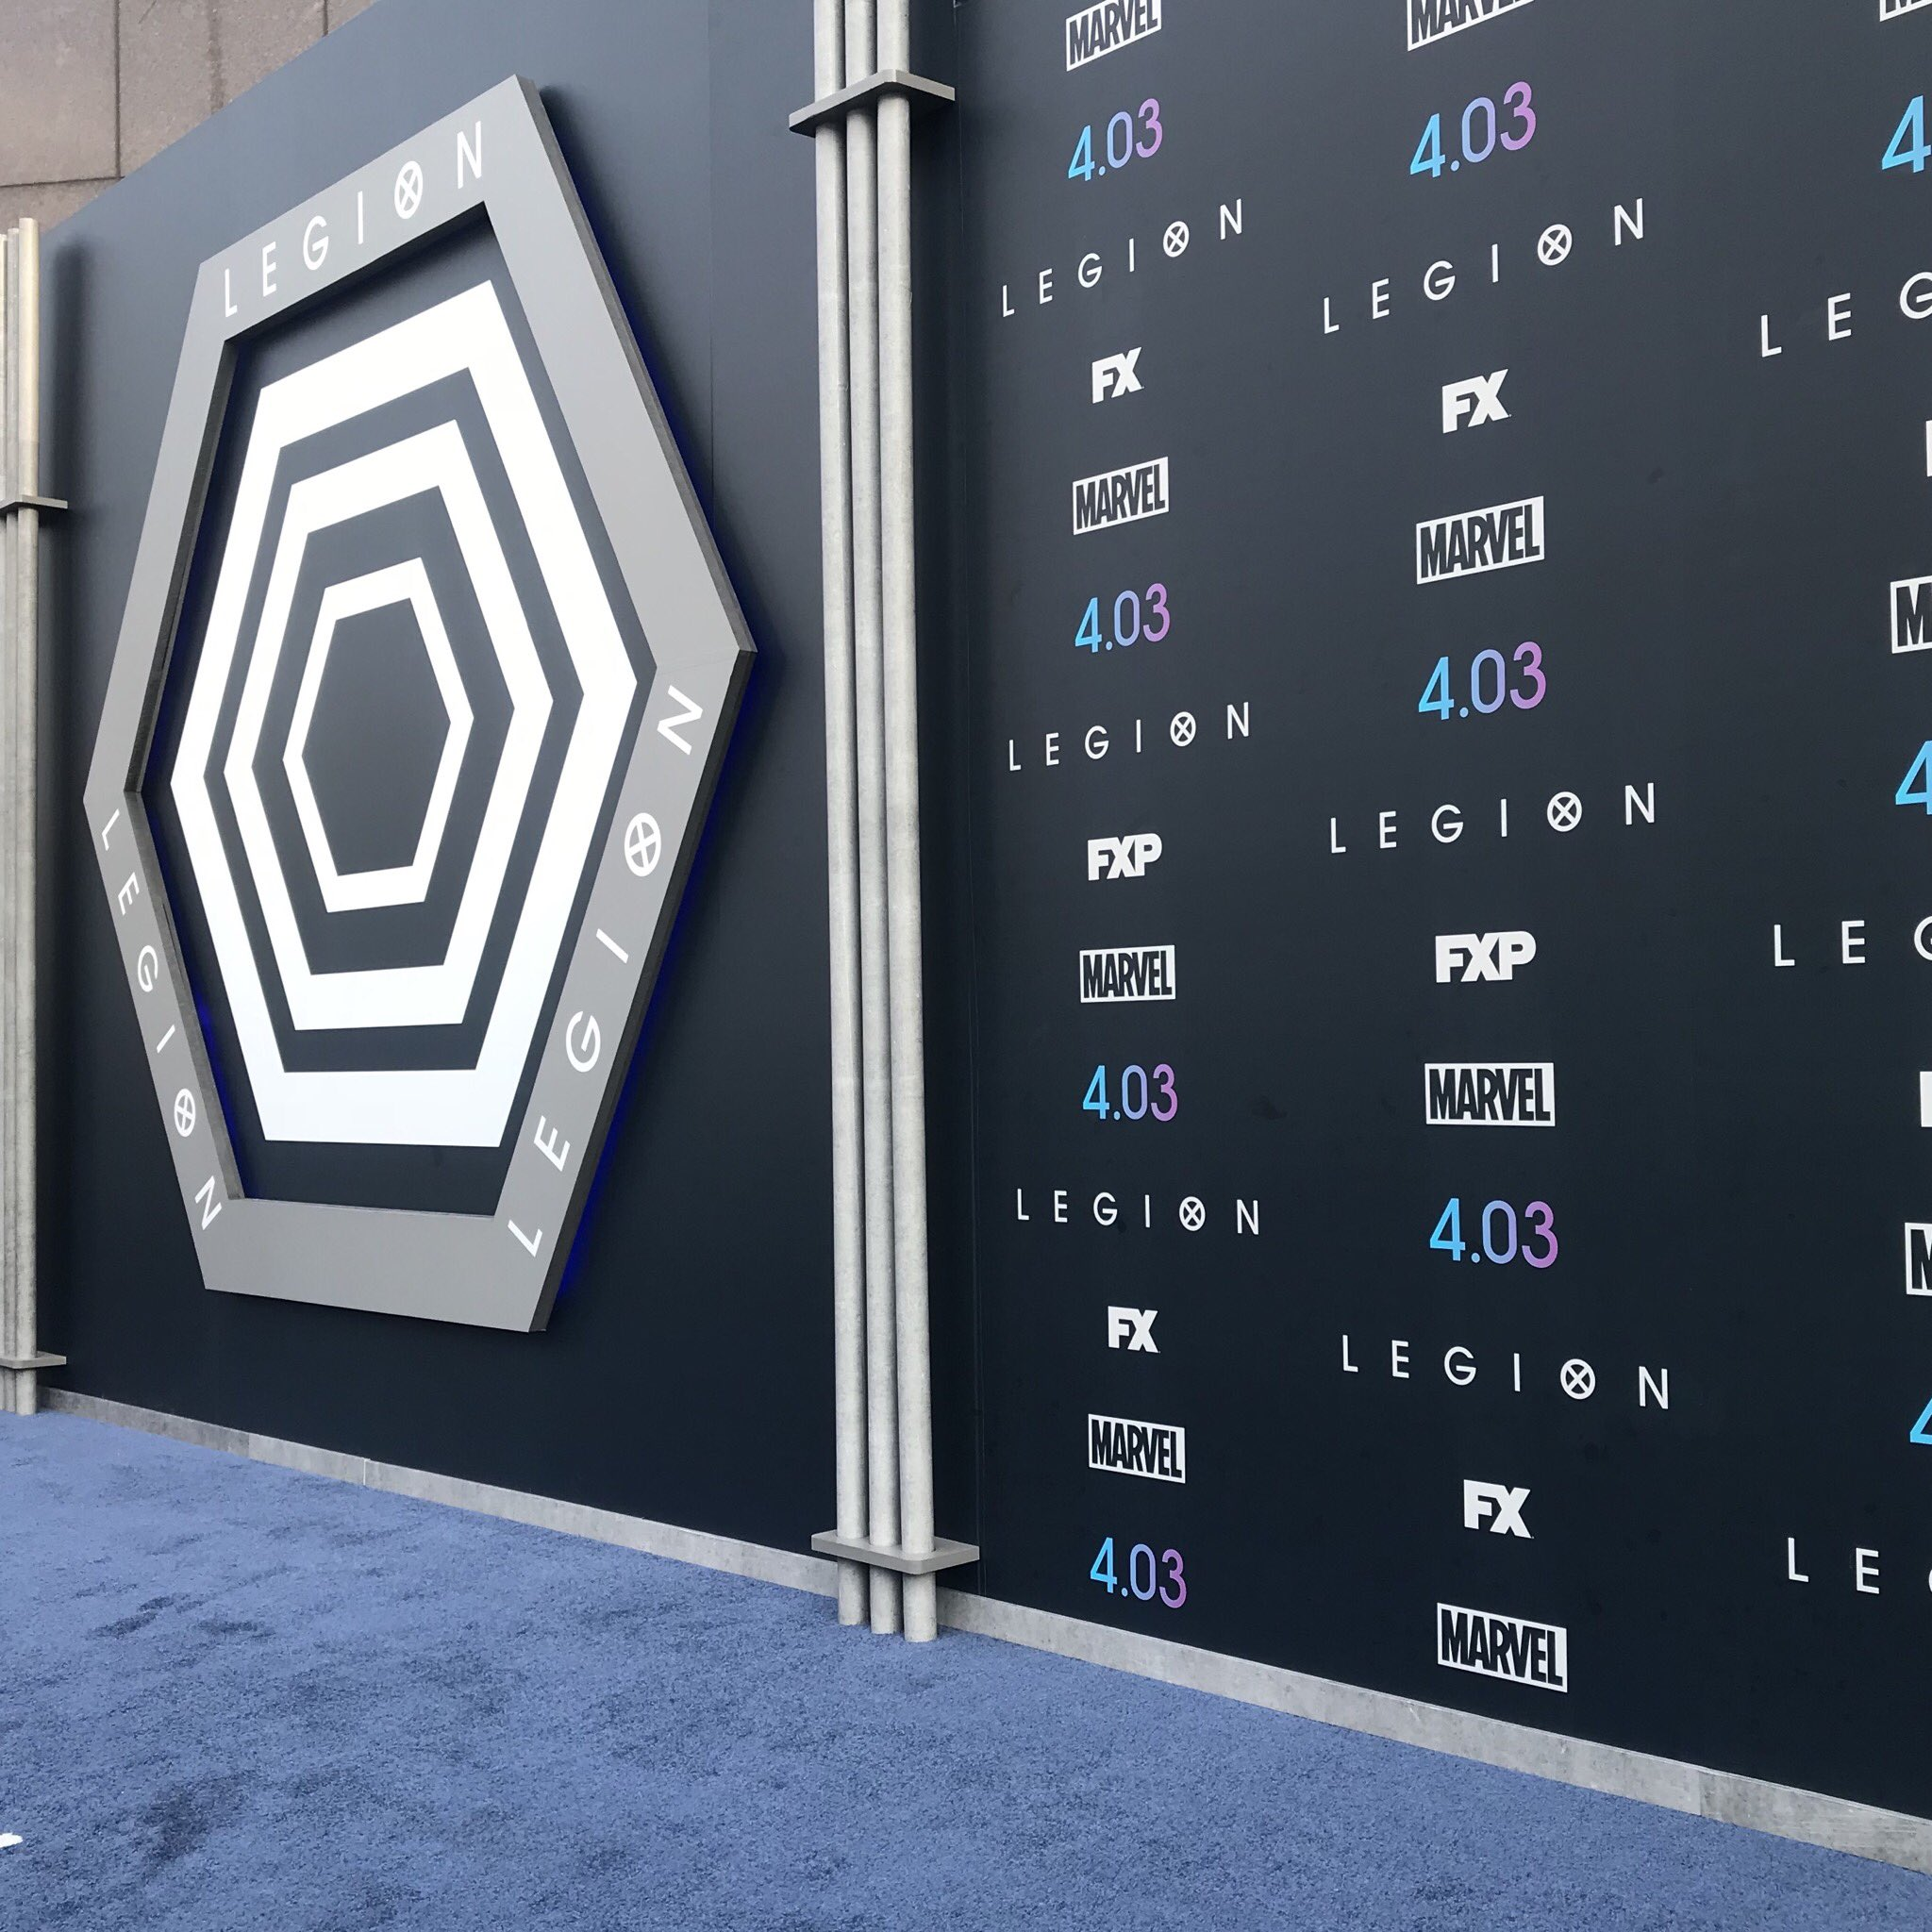 We're at the Season 2 Premiere of @LegionFX! Follow our Instagram Story for more. #LegionFX https://t.co/u8olNK0eLP